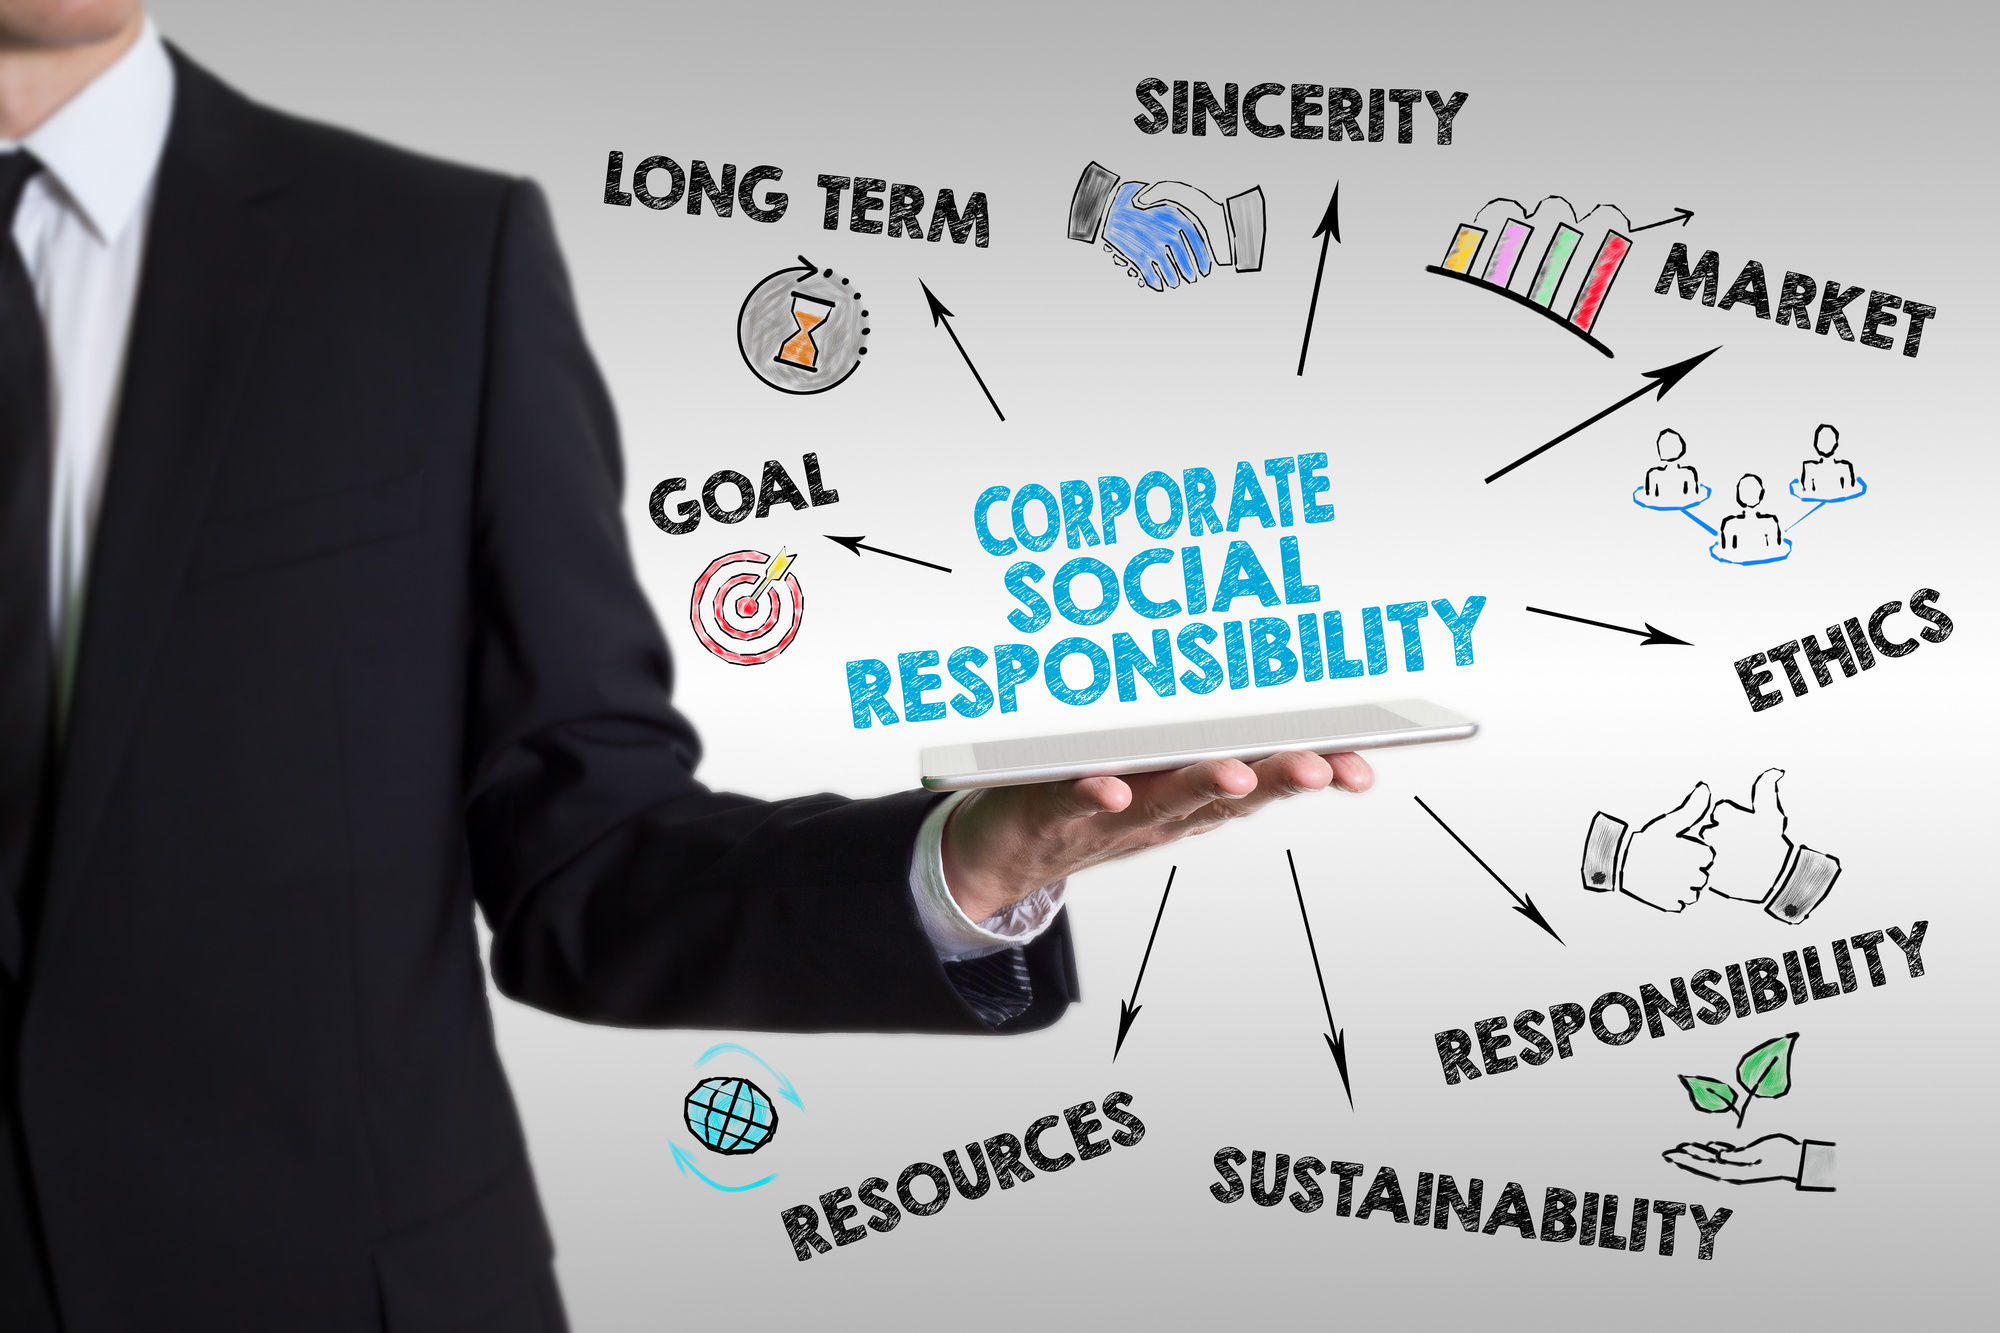 understanding corporate social responsibility: definition, effects